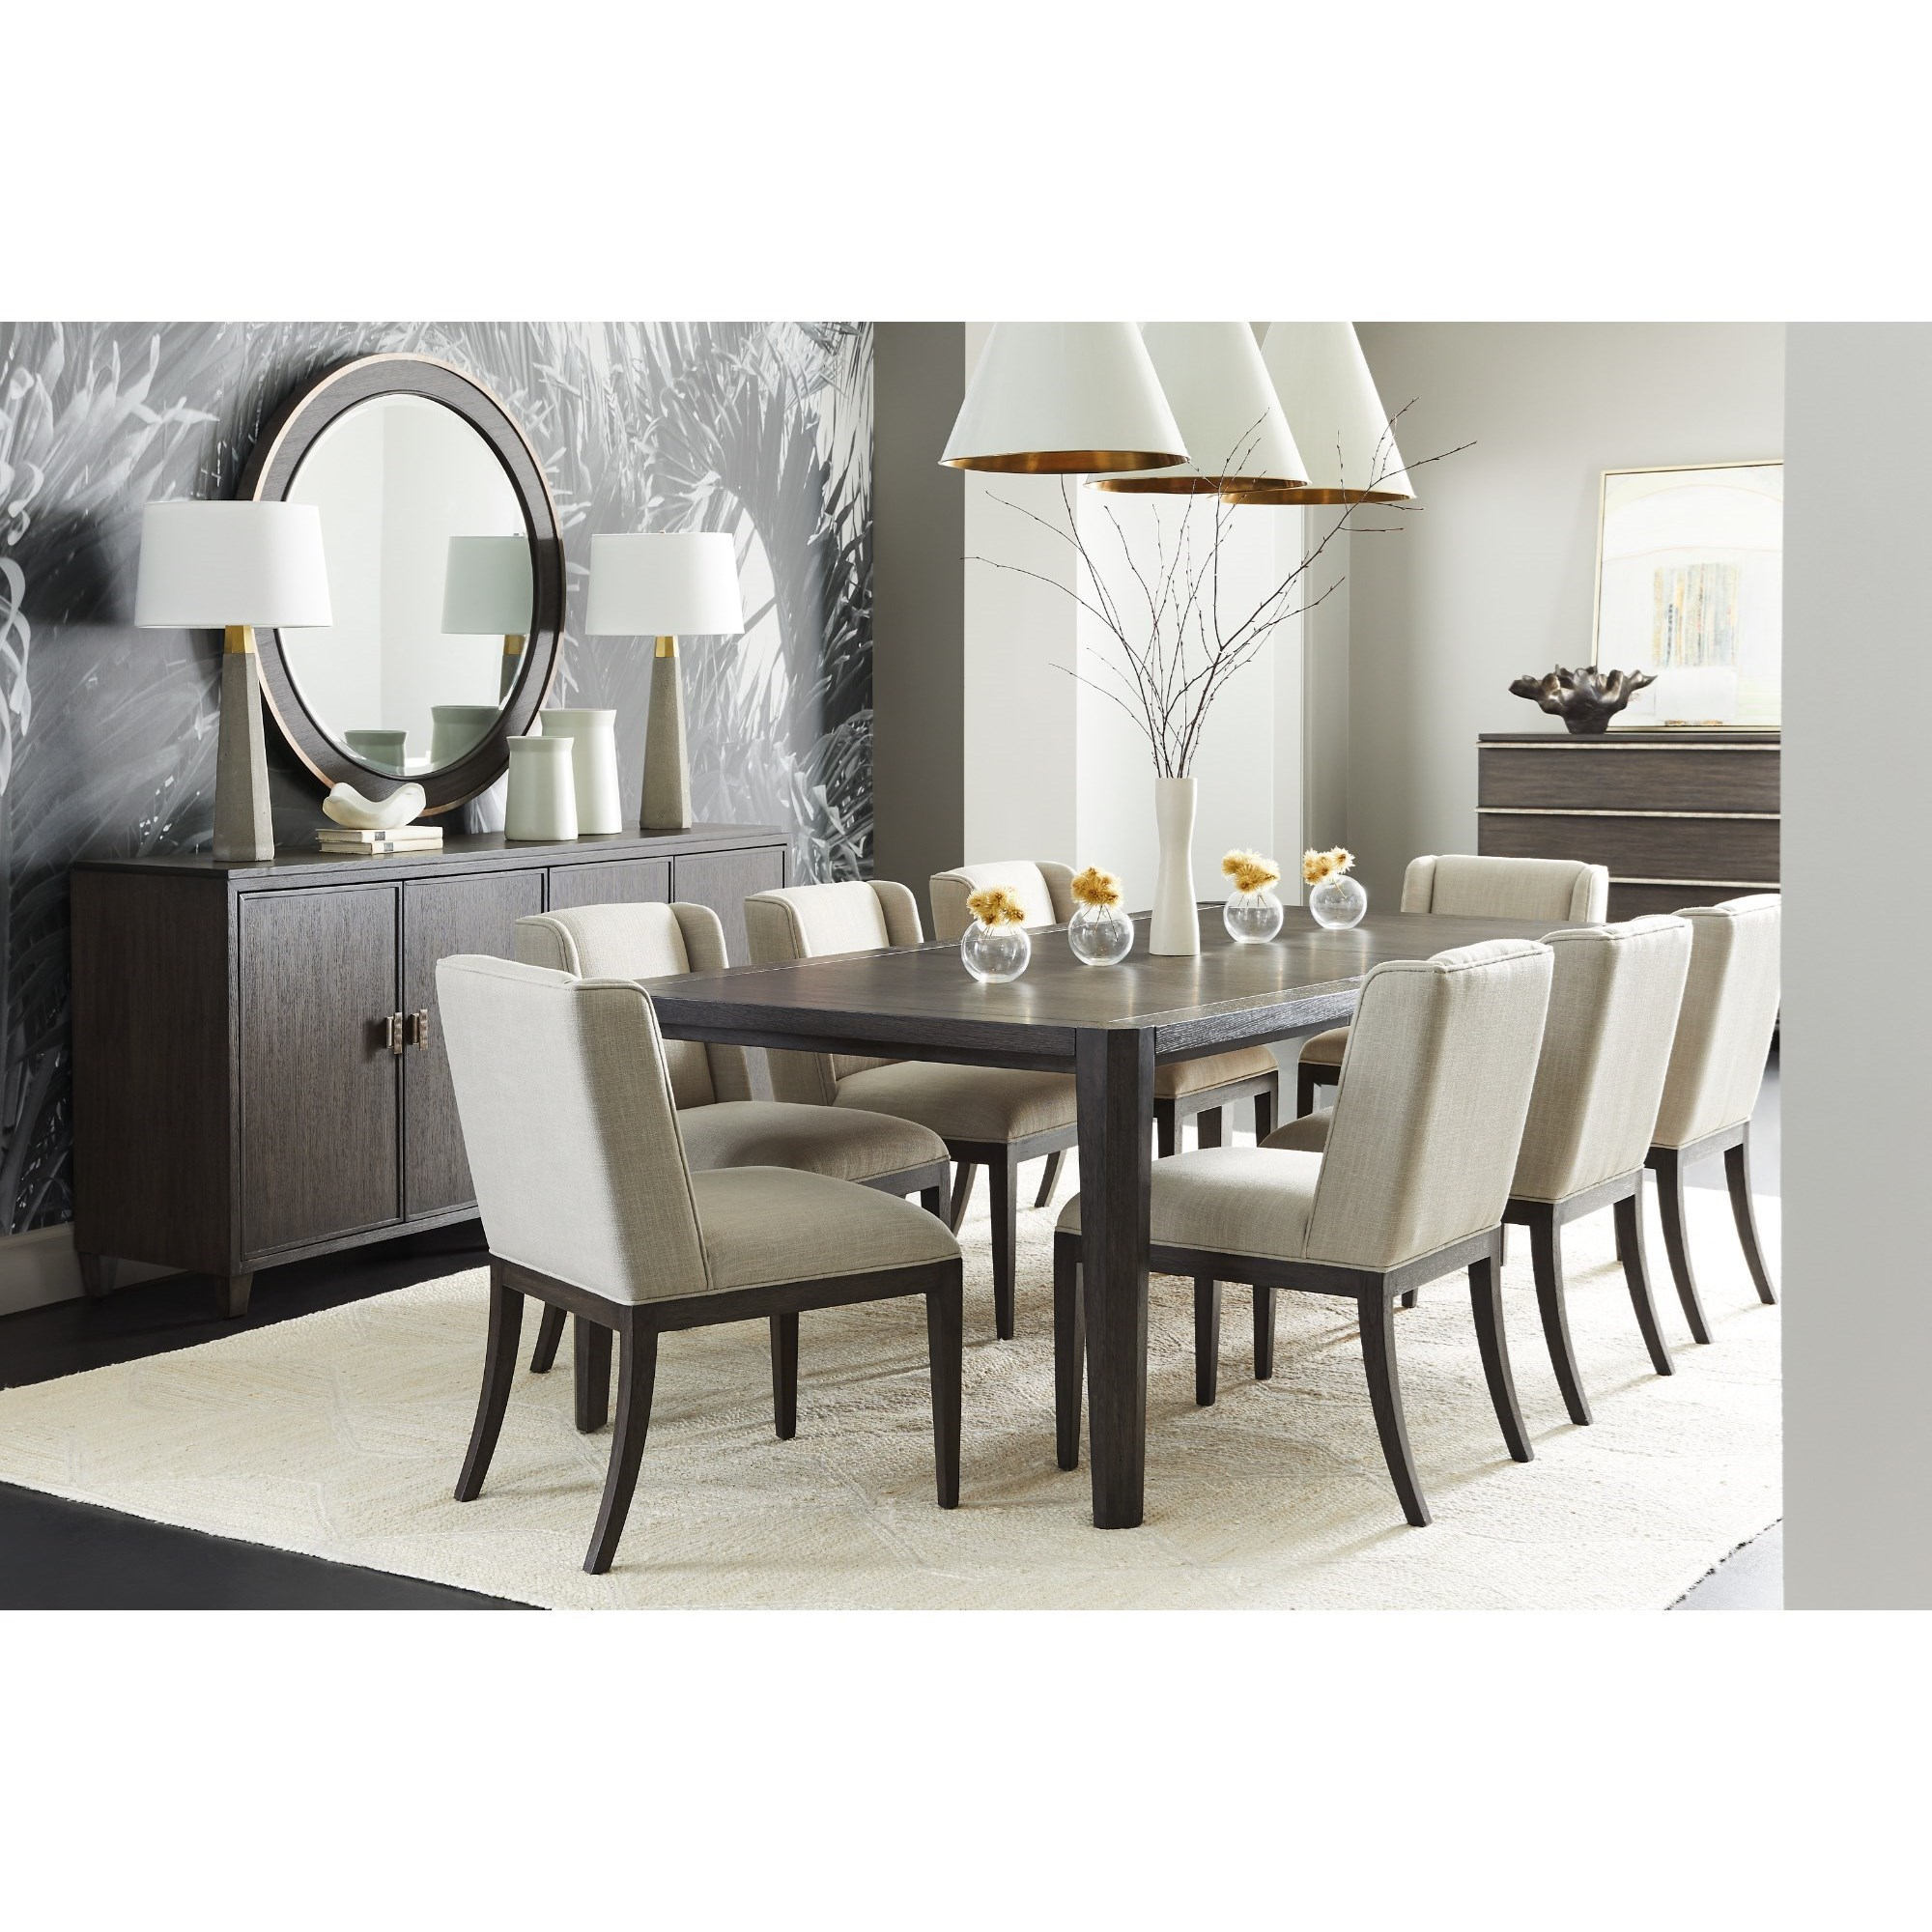 Horizon Formal Dining Room Group by Stanley Furniture at Alison Craig Home Furnishings